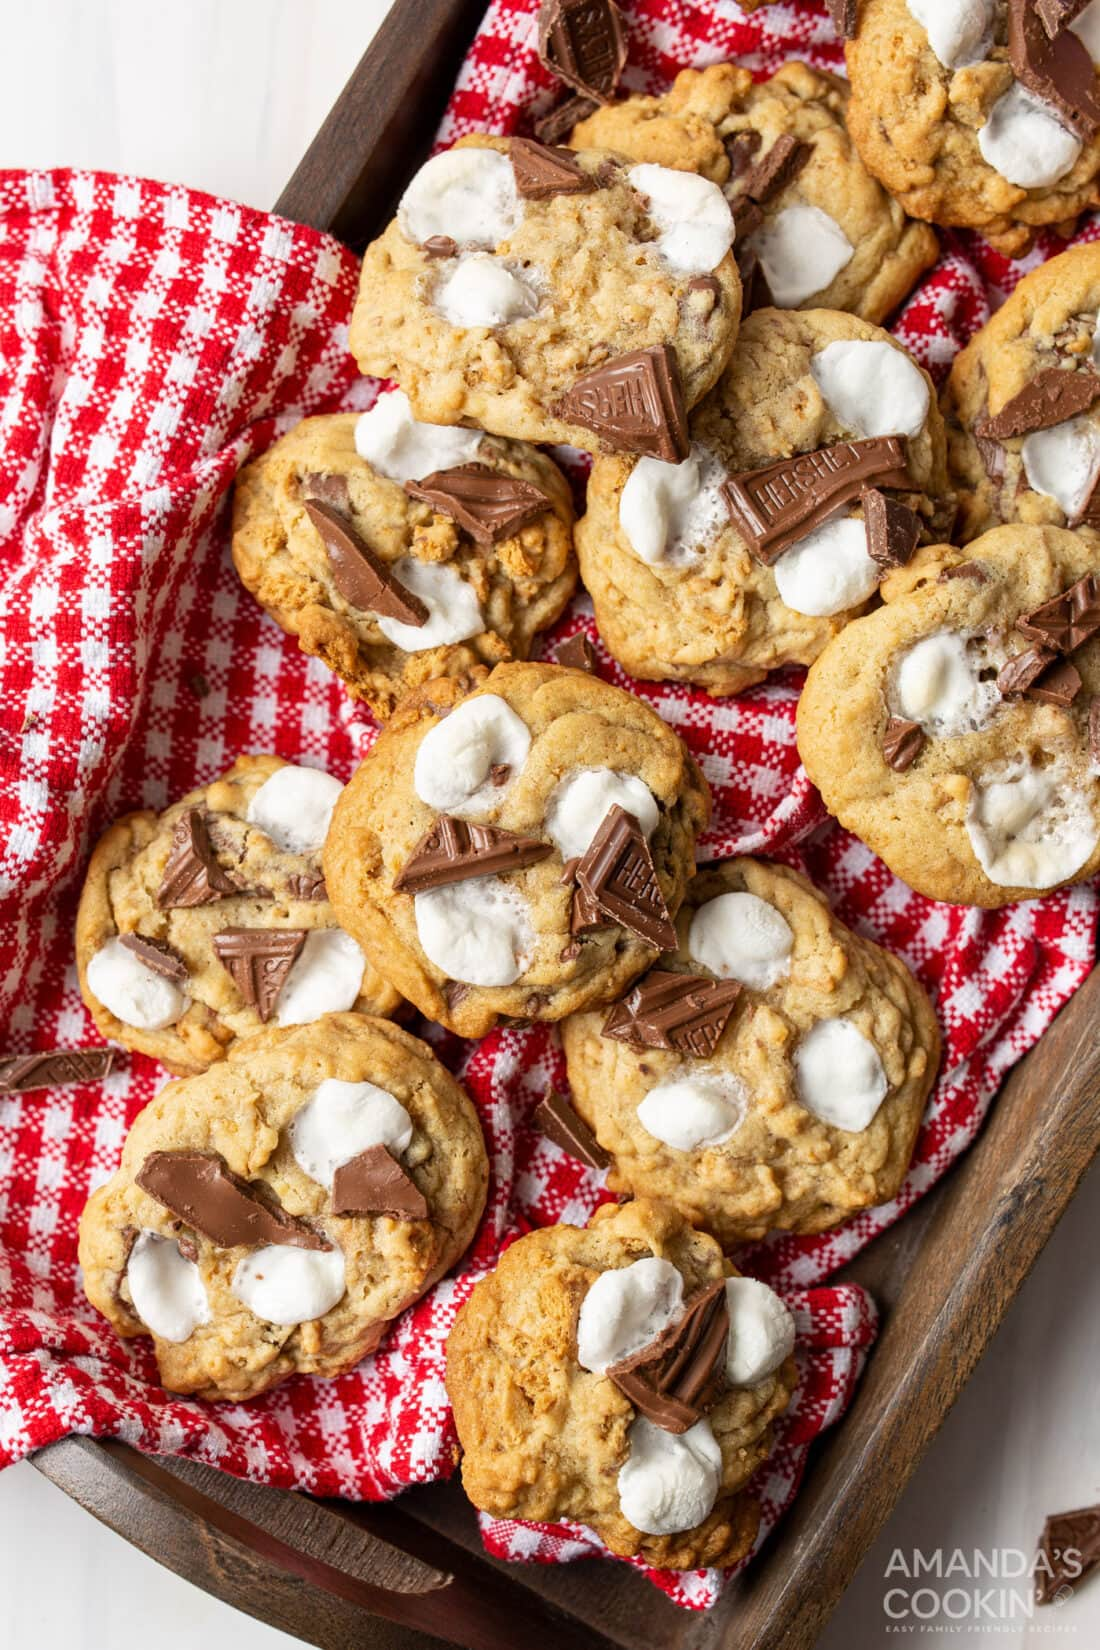 tray of s'mores cookies